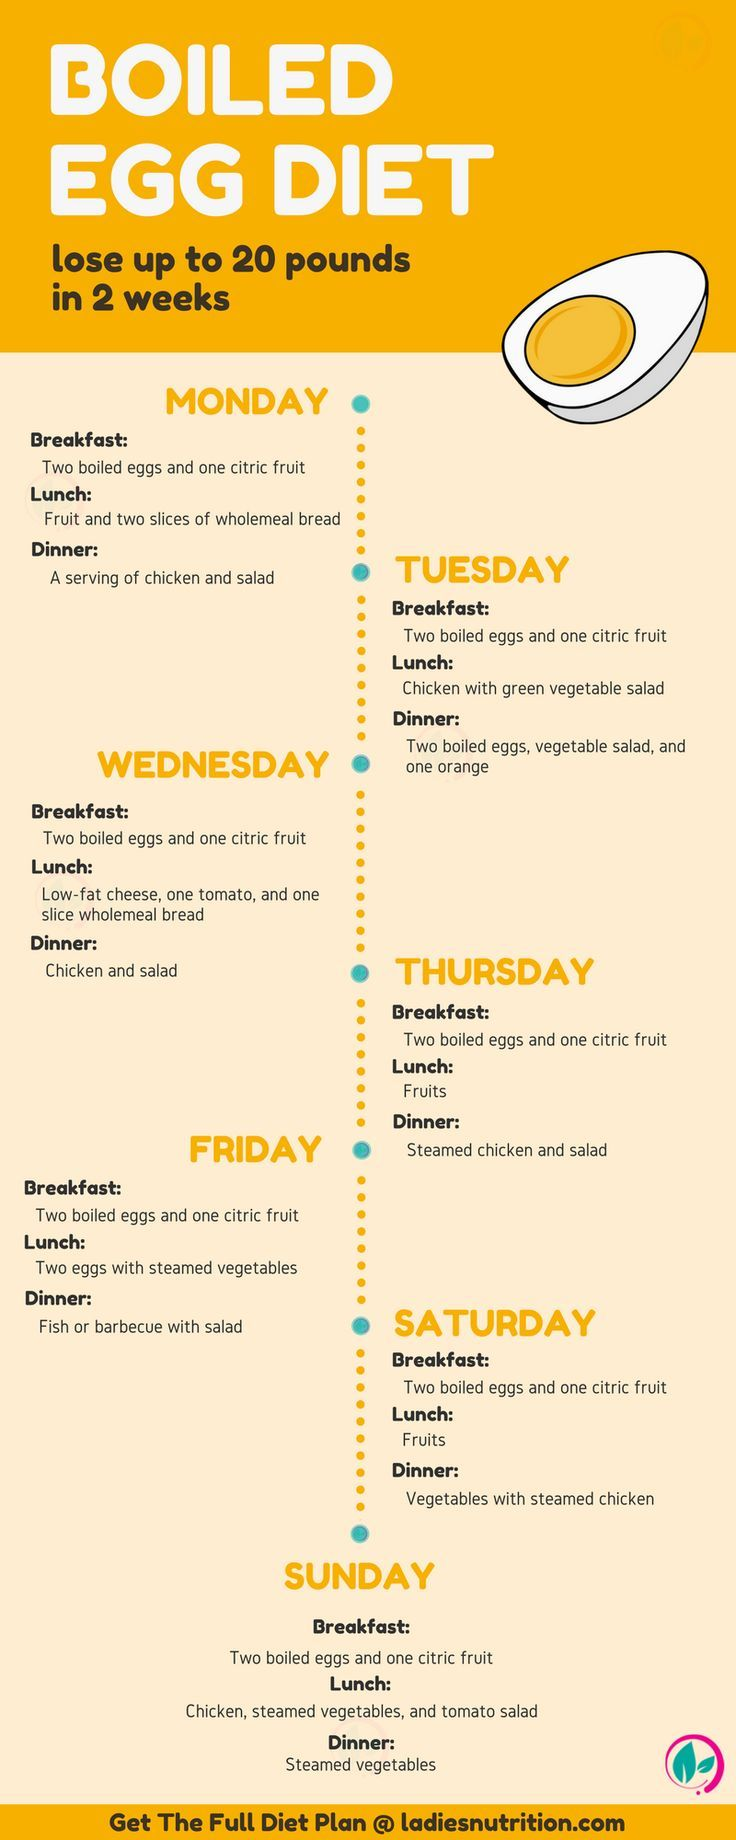 Egg Diet - Diet Plan